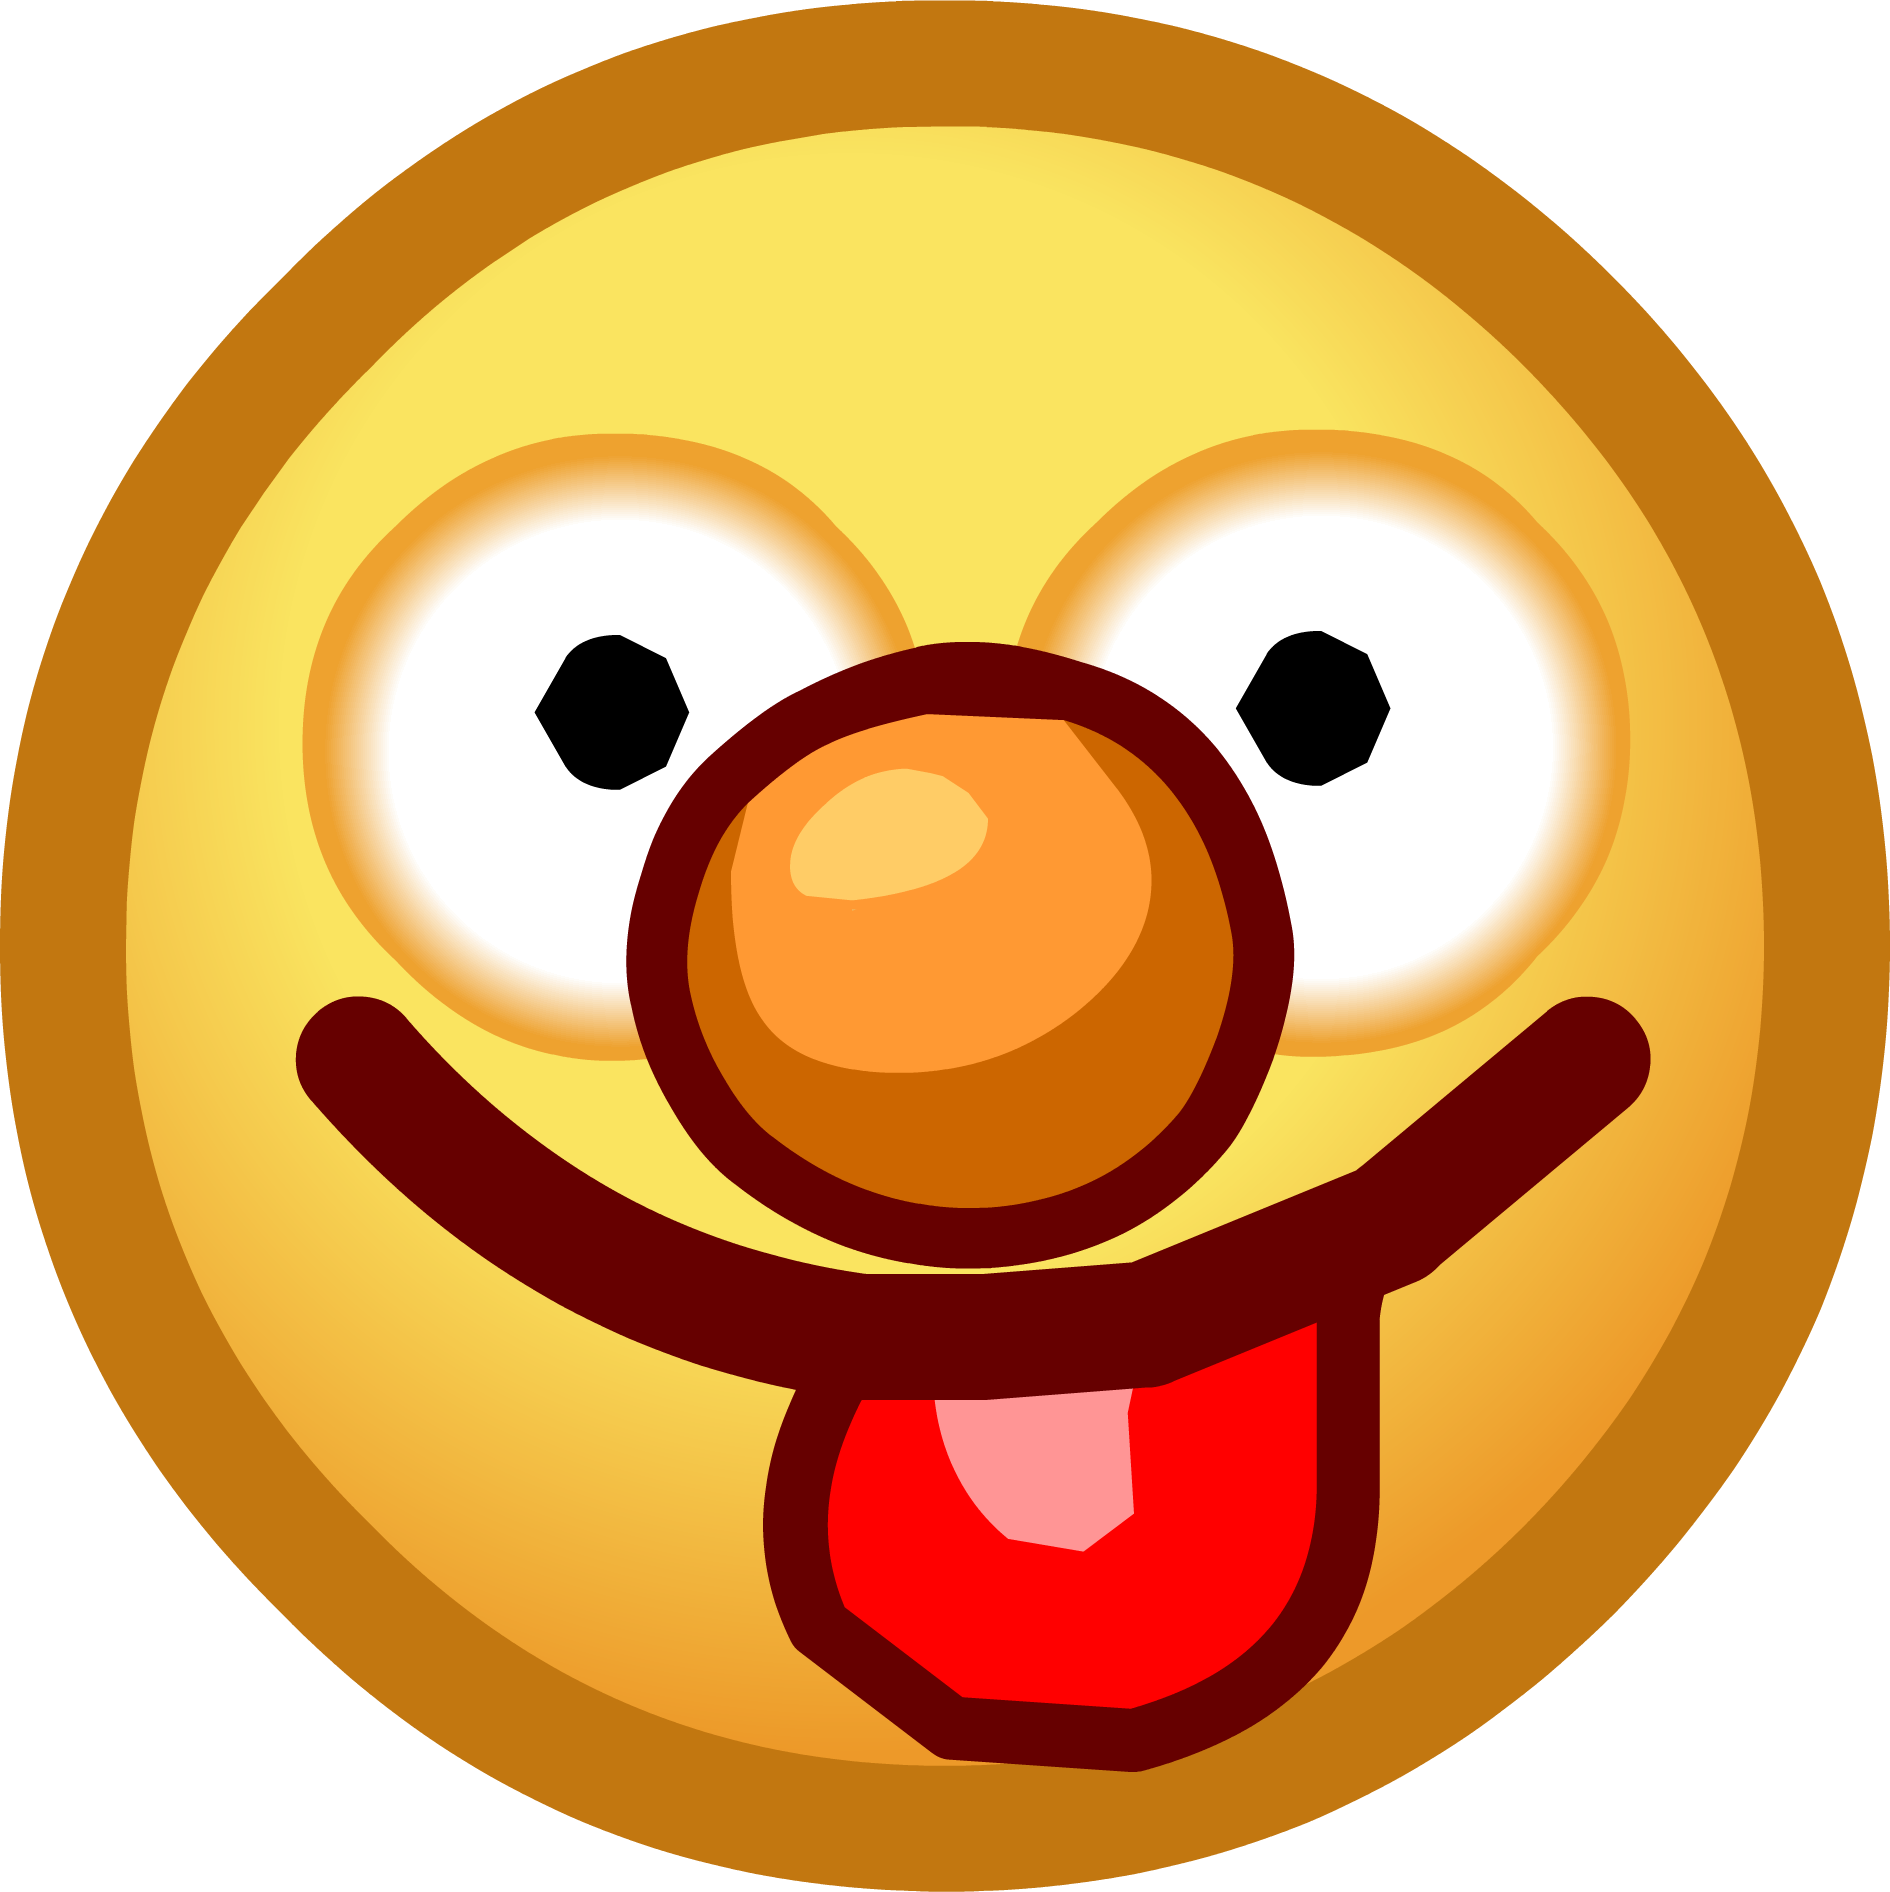 Smiley Face With Tongue Sticking Out Muppets 2014 Emoticons Tongue Png